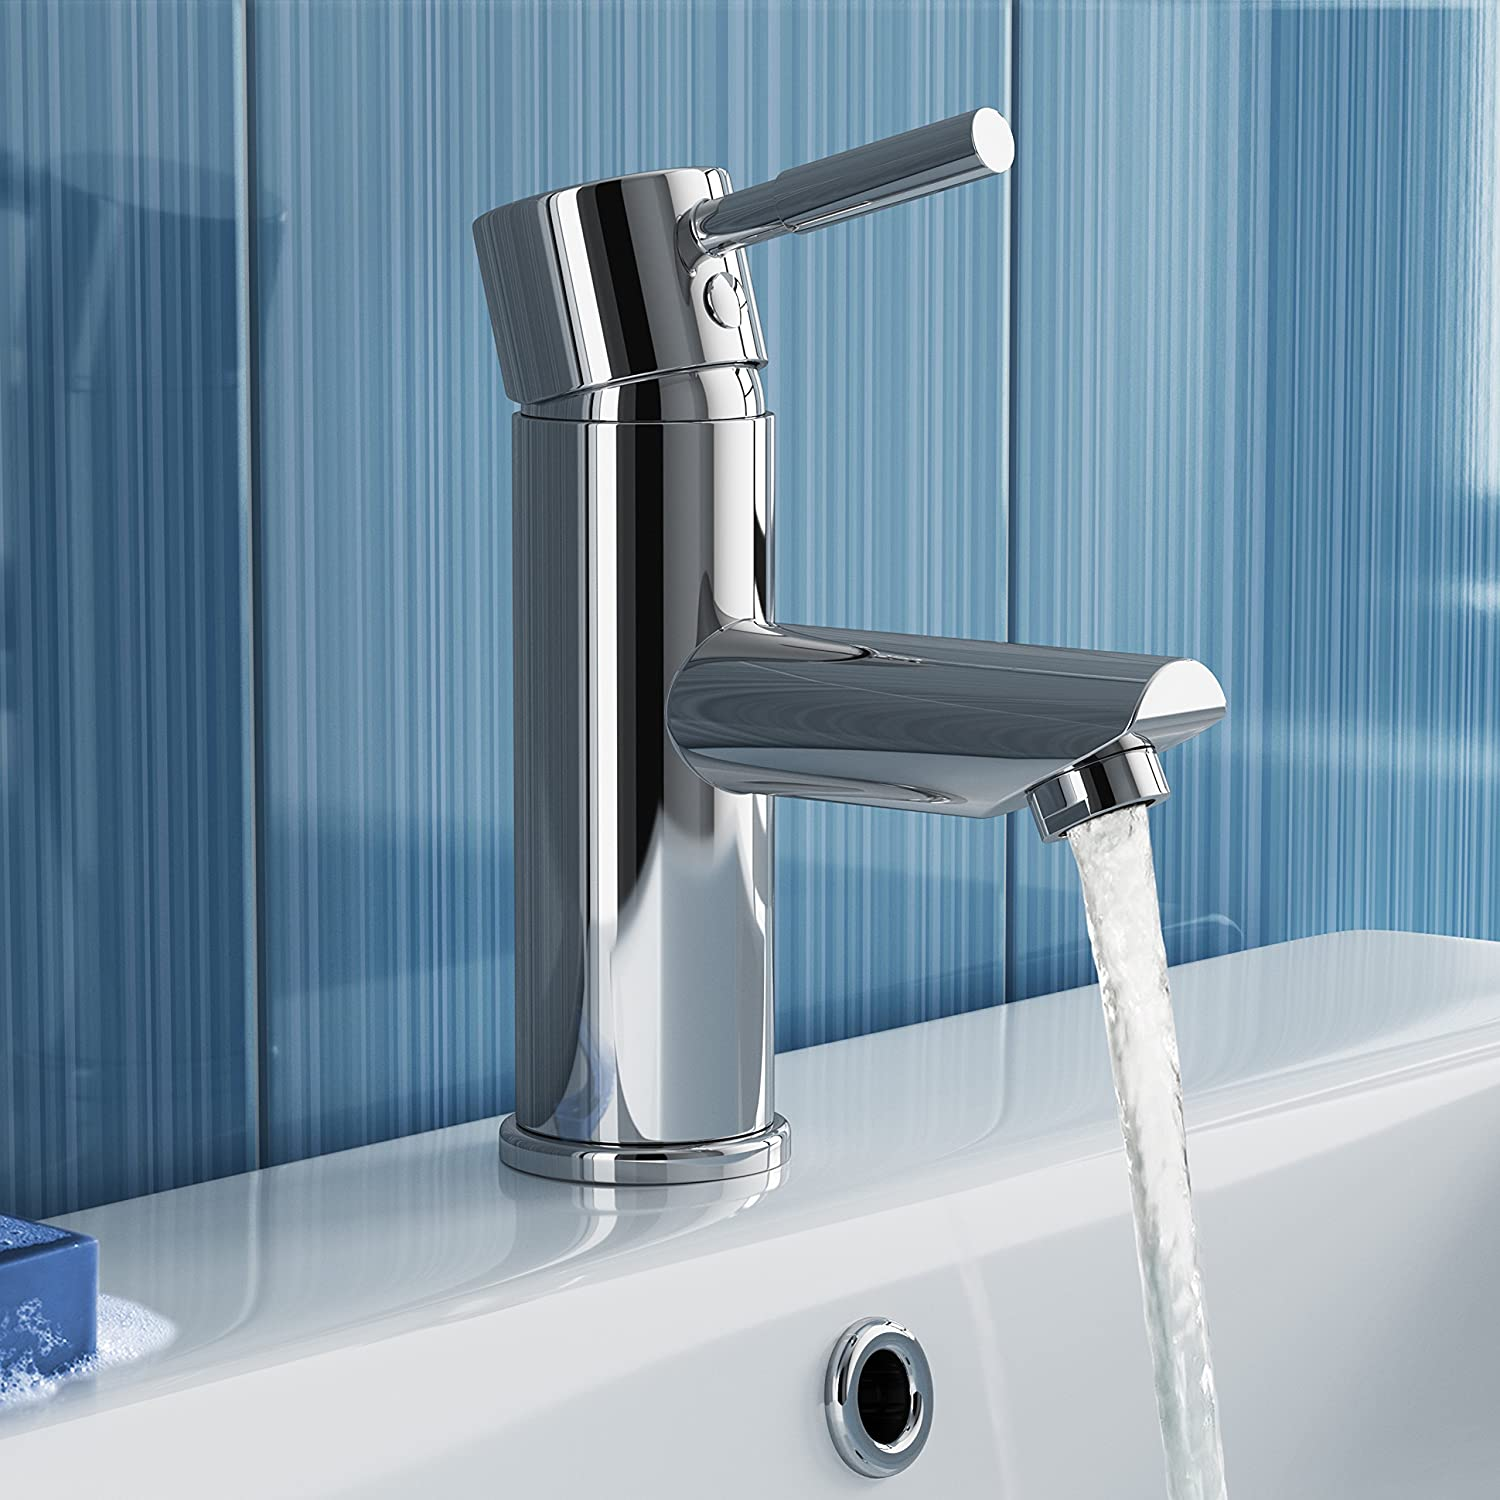 iBathUK Chrome Basin Sink Mixer Tap with Bath Filler Tap Set TP3015 ...